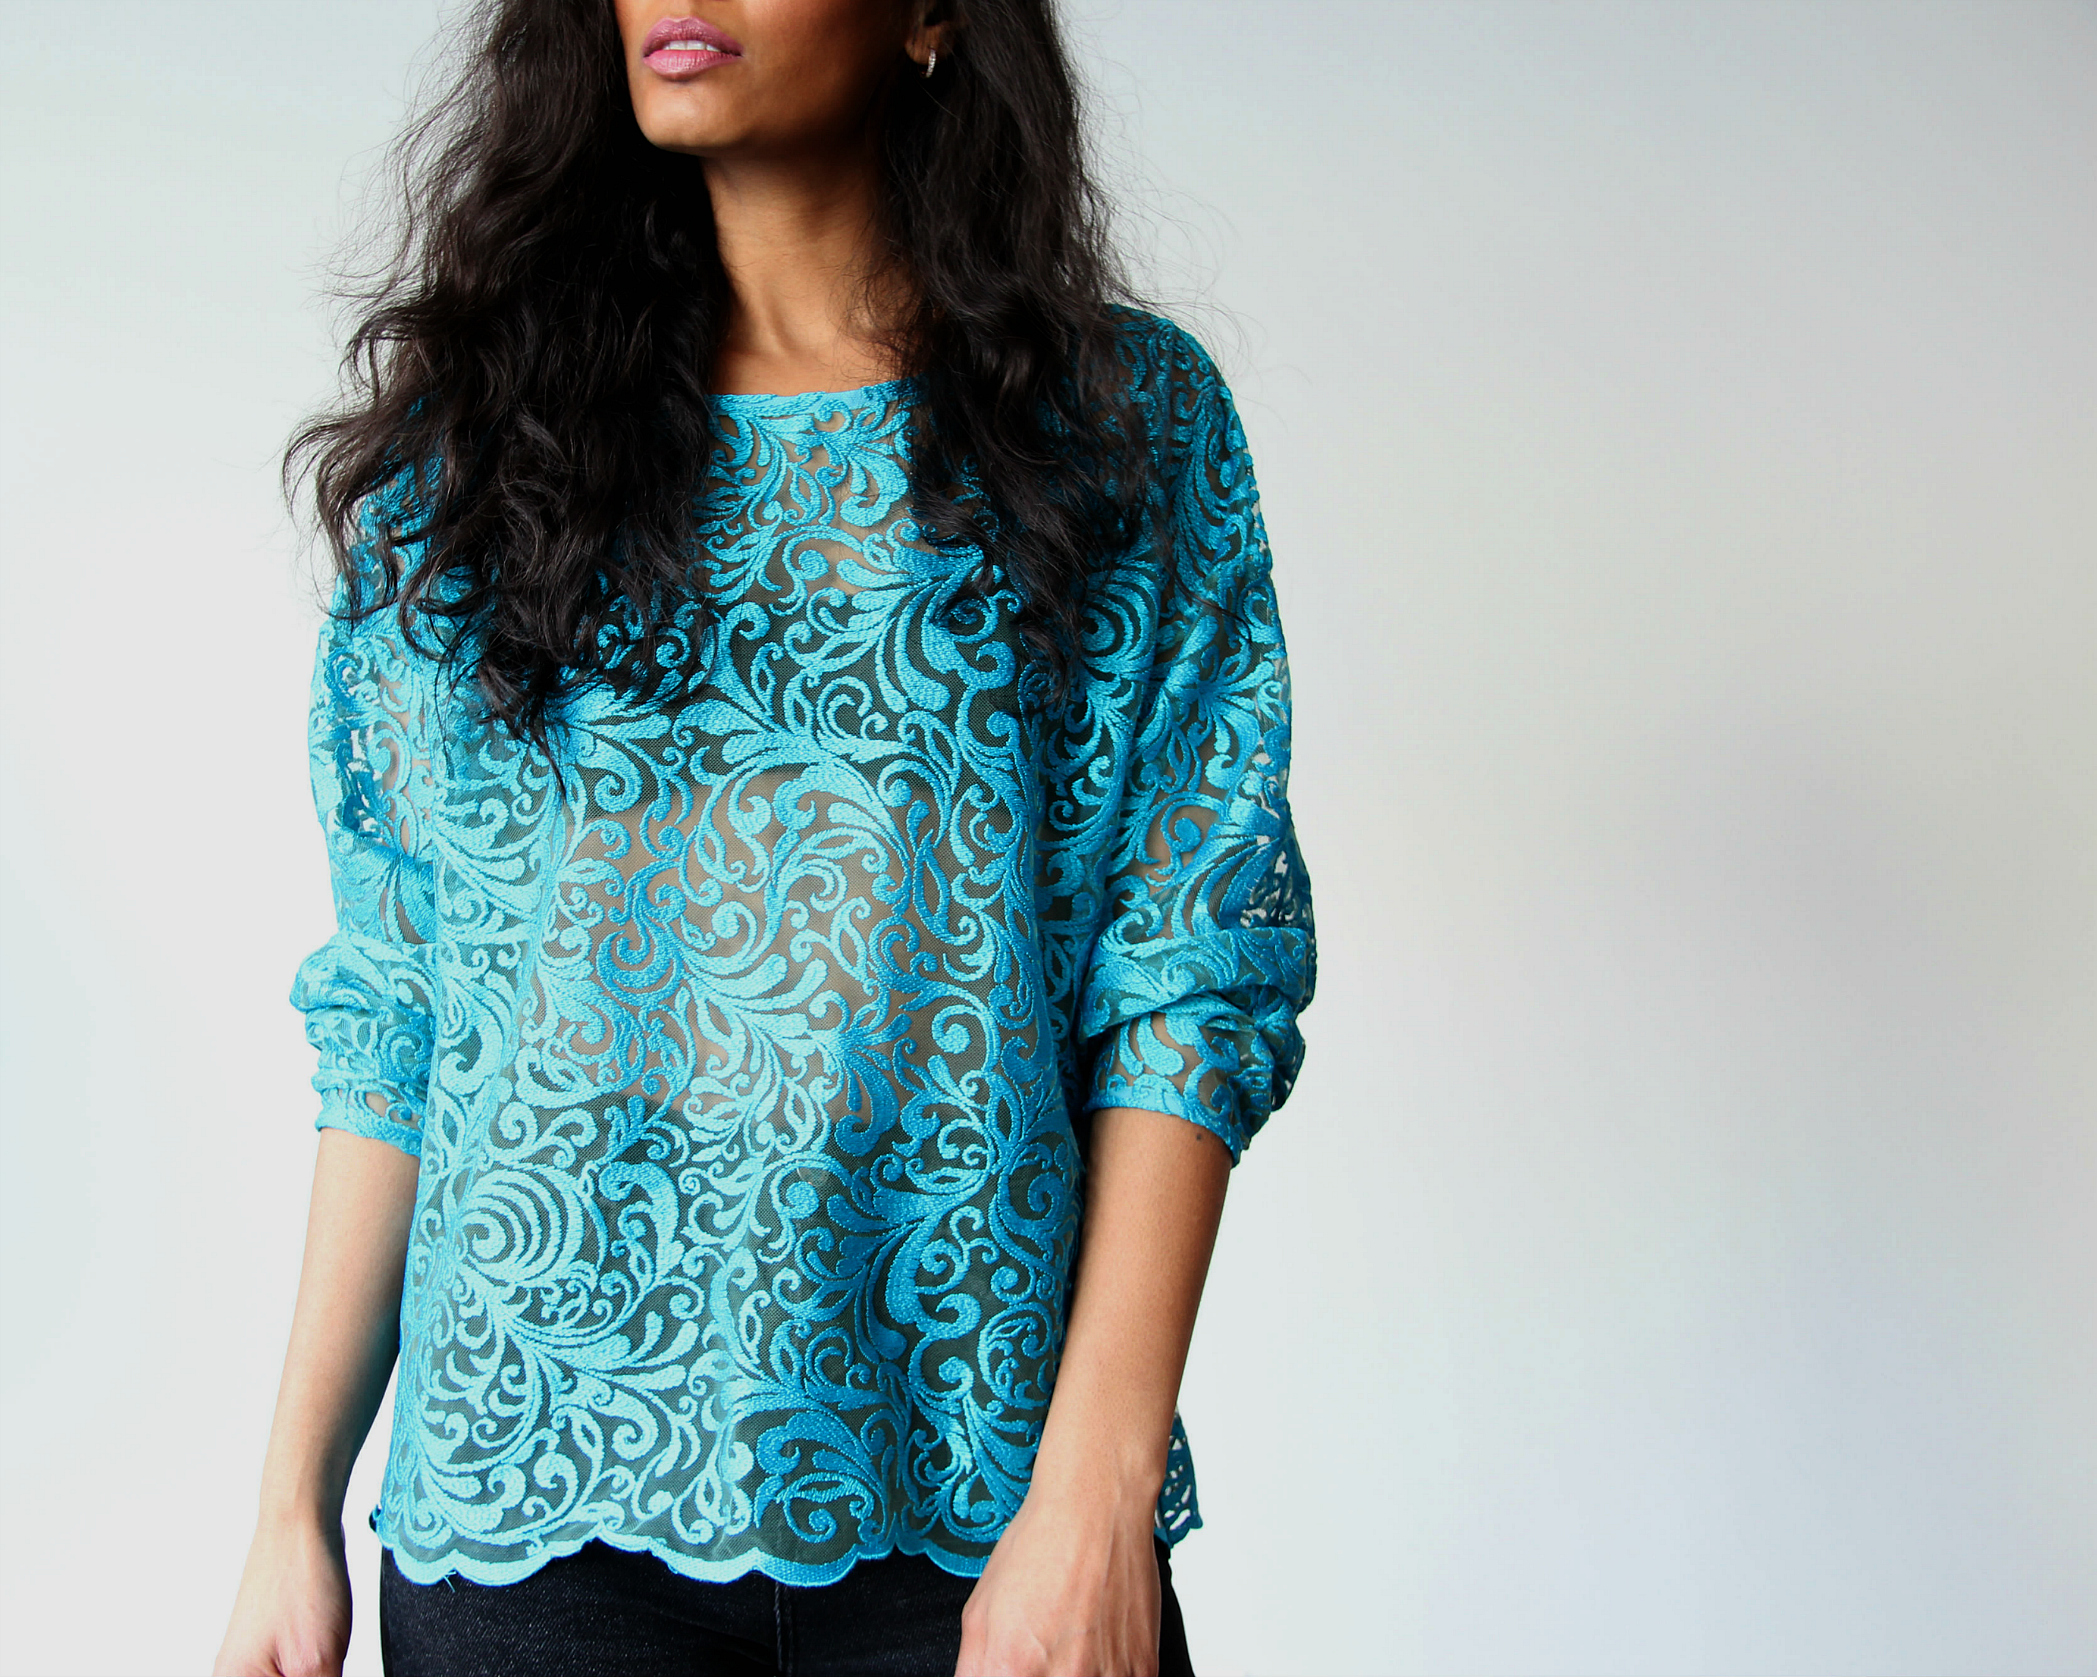 Lace Blouse with Sleeve Detail